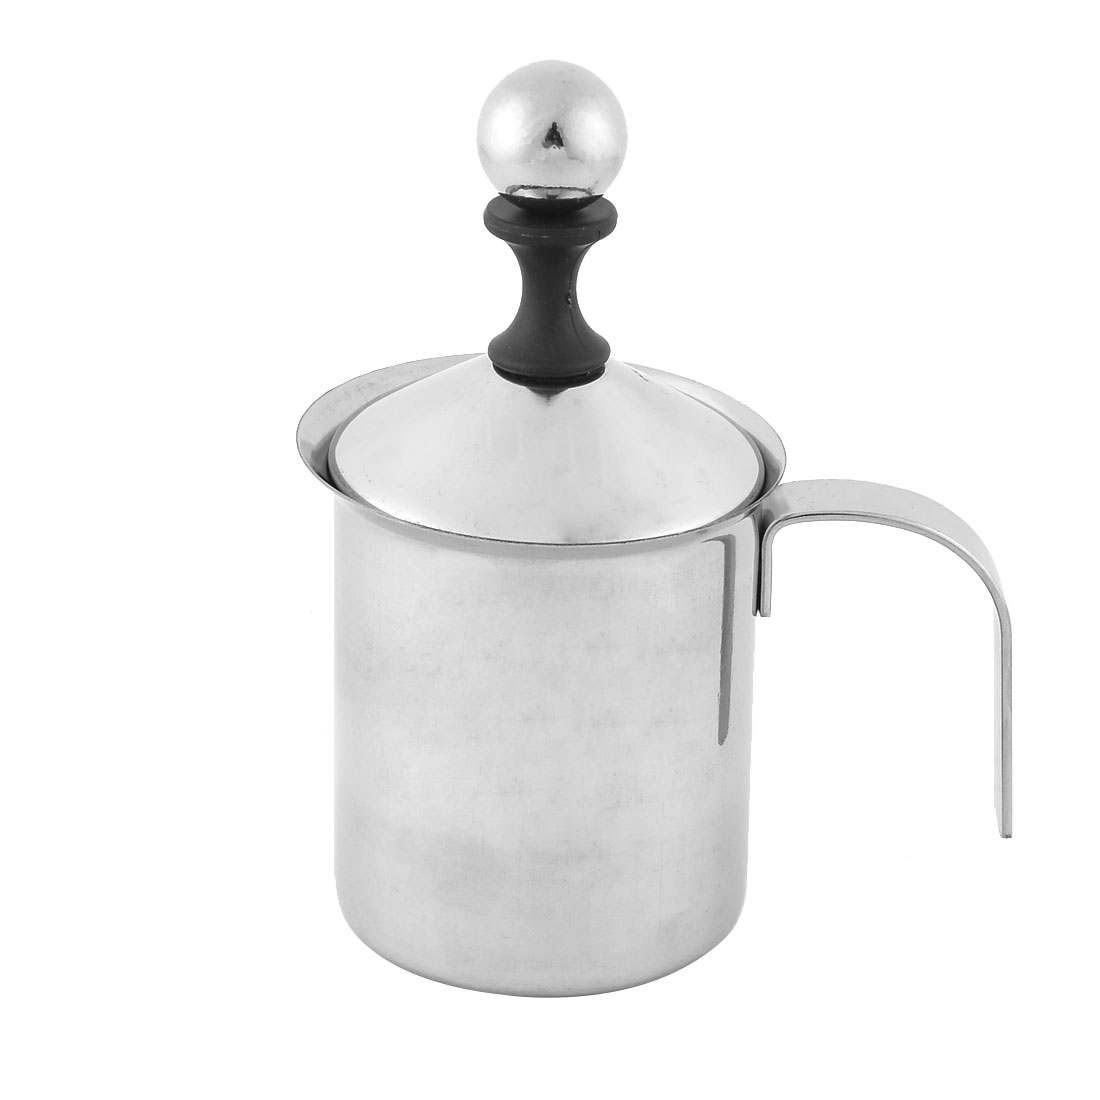 Household Stainless Steel Double Mesh Milk Creamer Silver Tone 400ml Capacity